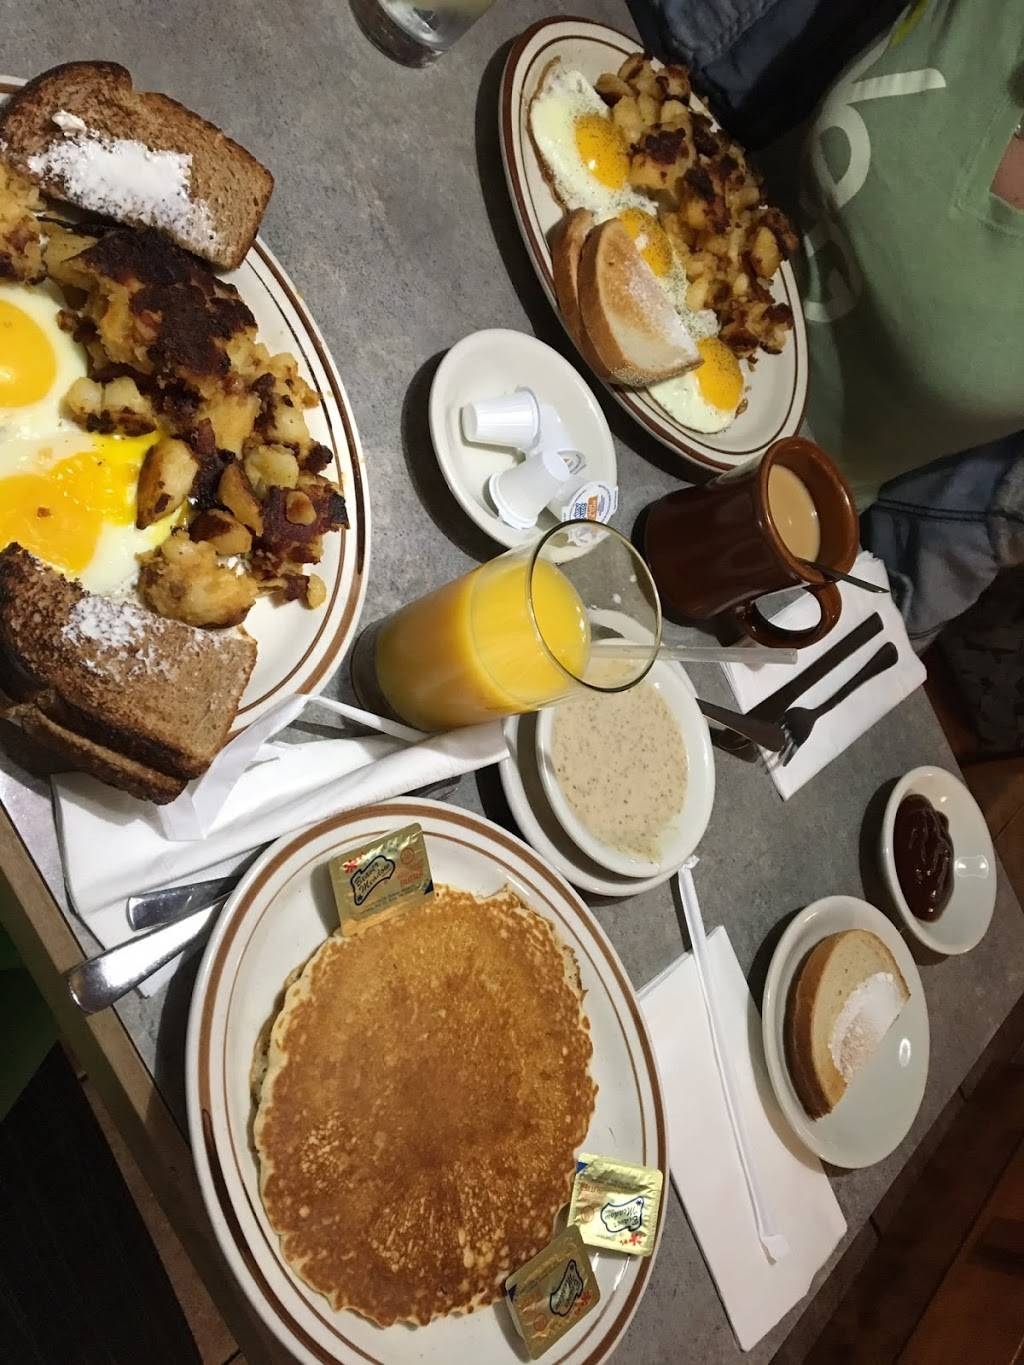 East Gate Luncheonette | restaurant | 104 Store Ave, Waterbury, CT 06705, USA | 2035743684 OR +1 203-574-3684